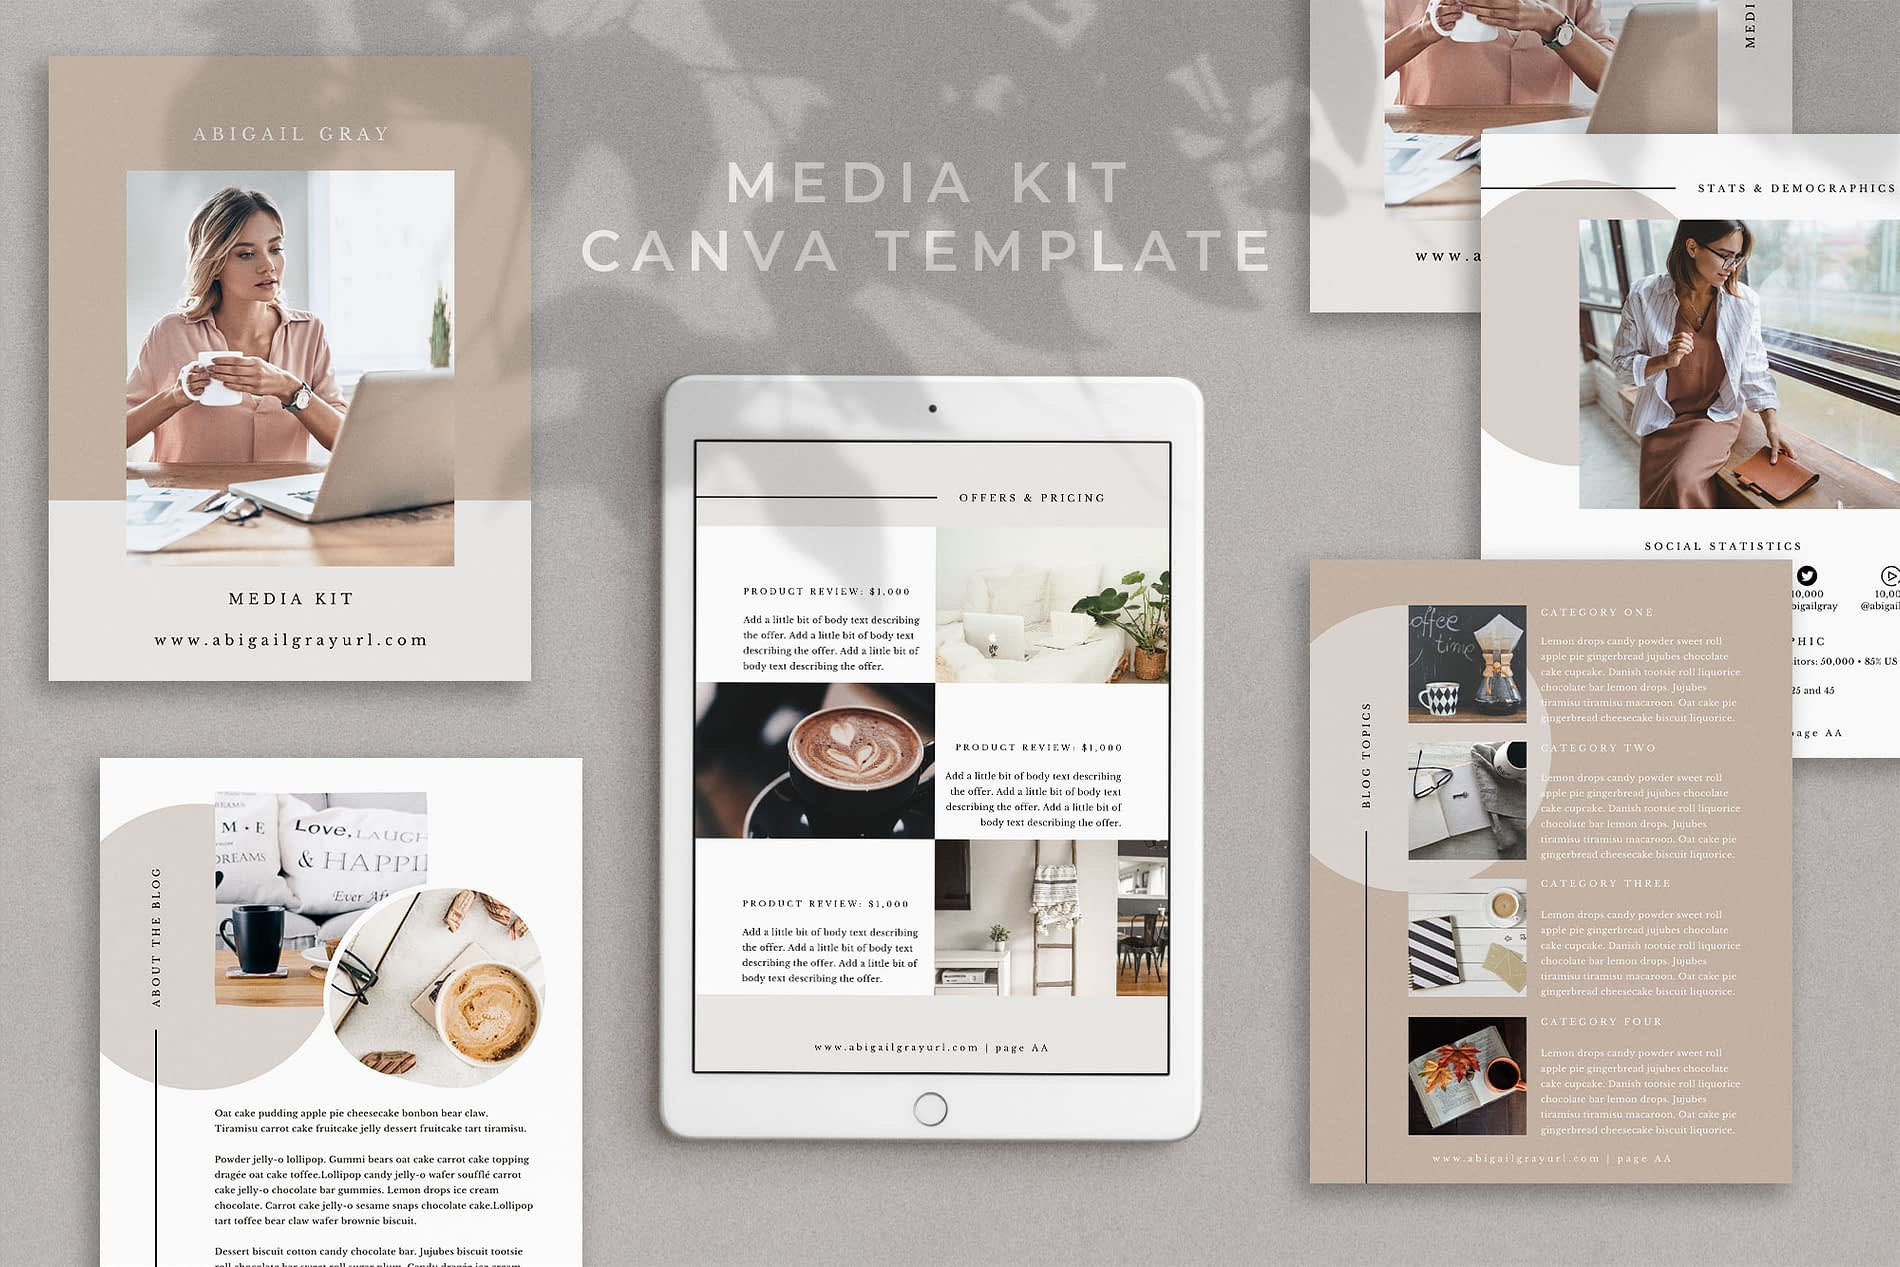 Abigail - Media kit template in Canva